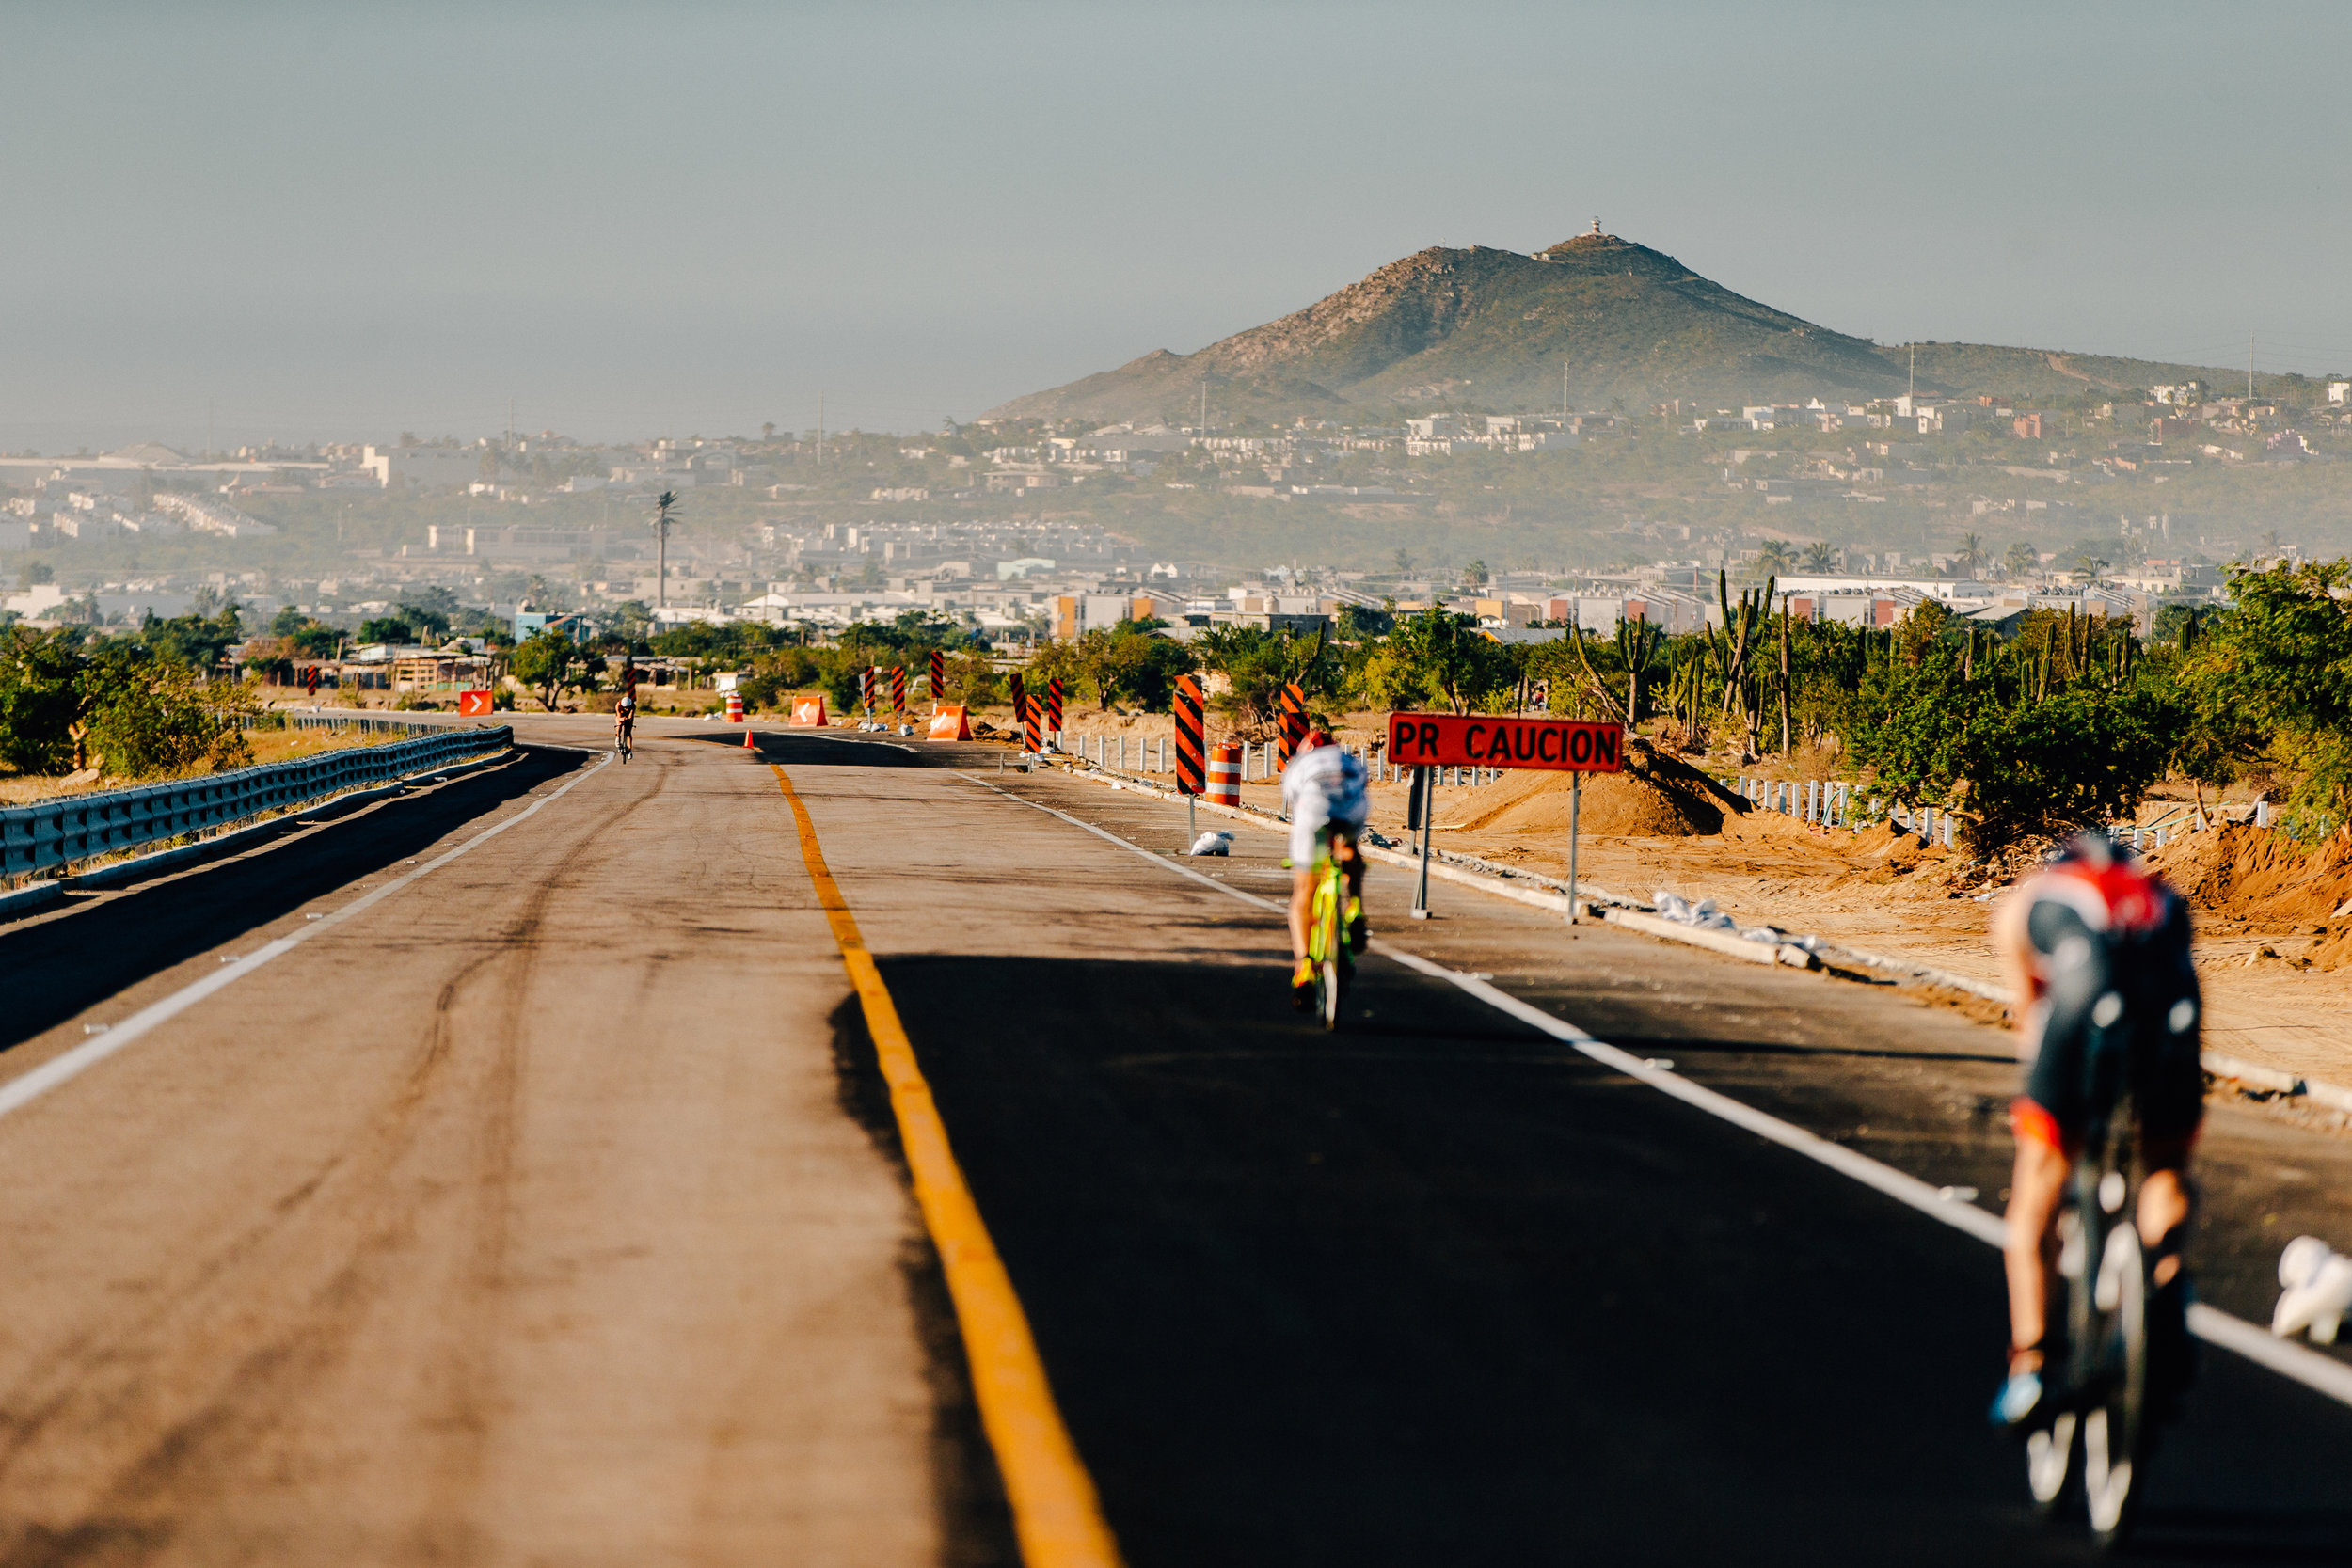 Lauren Brandon heading out on the toll road turn around as the men's chase group heads back into Cabo San Lucas.